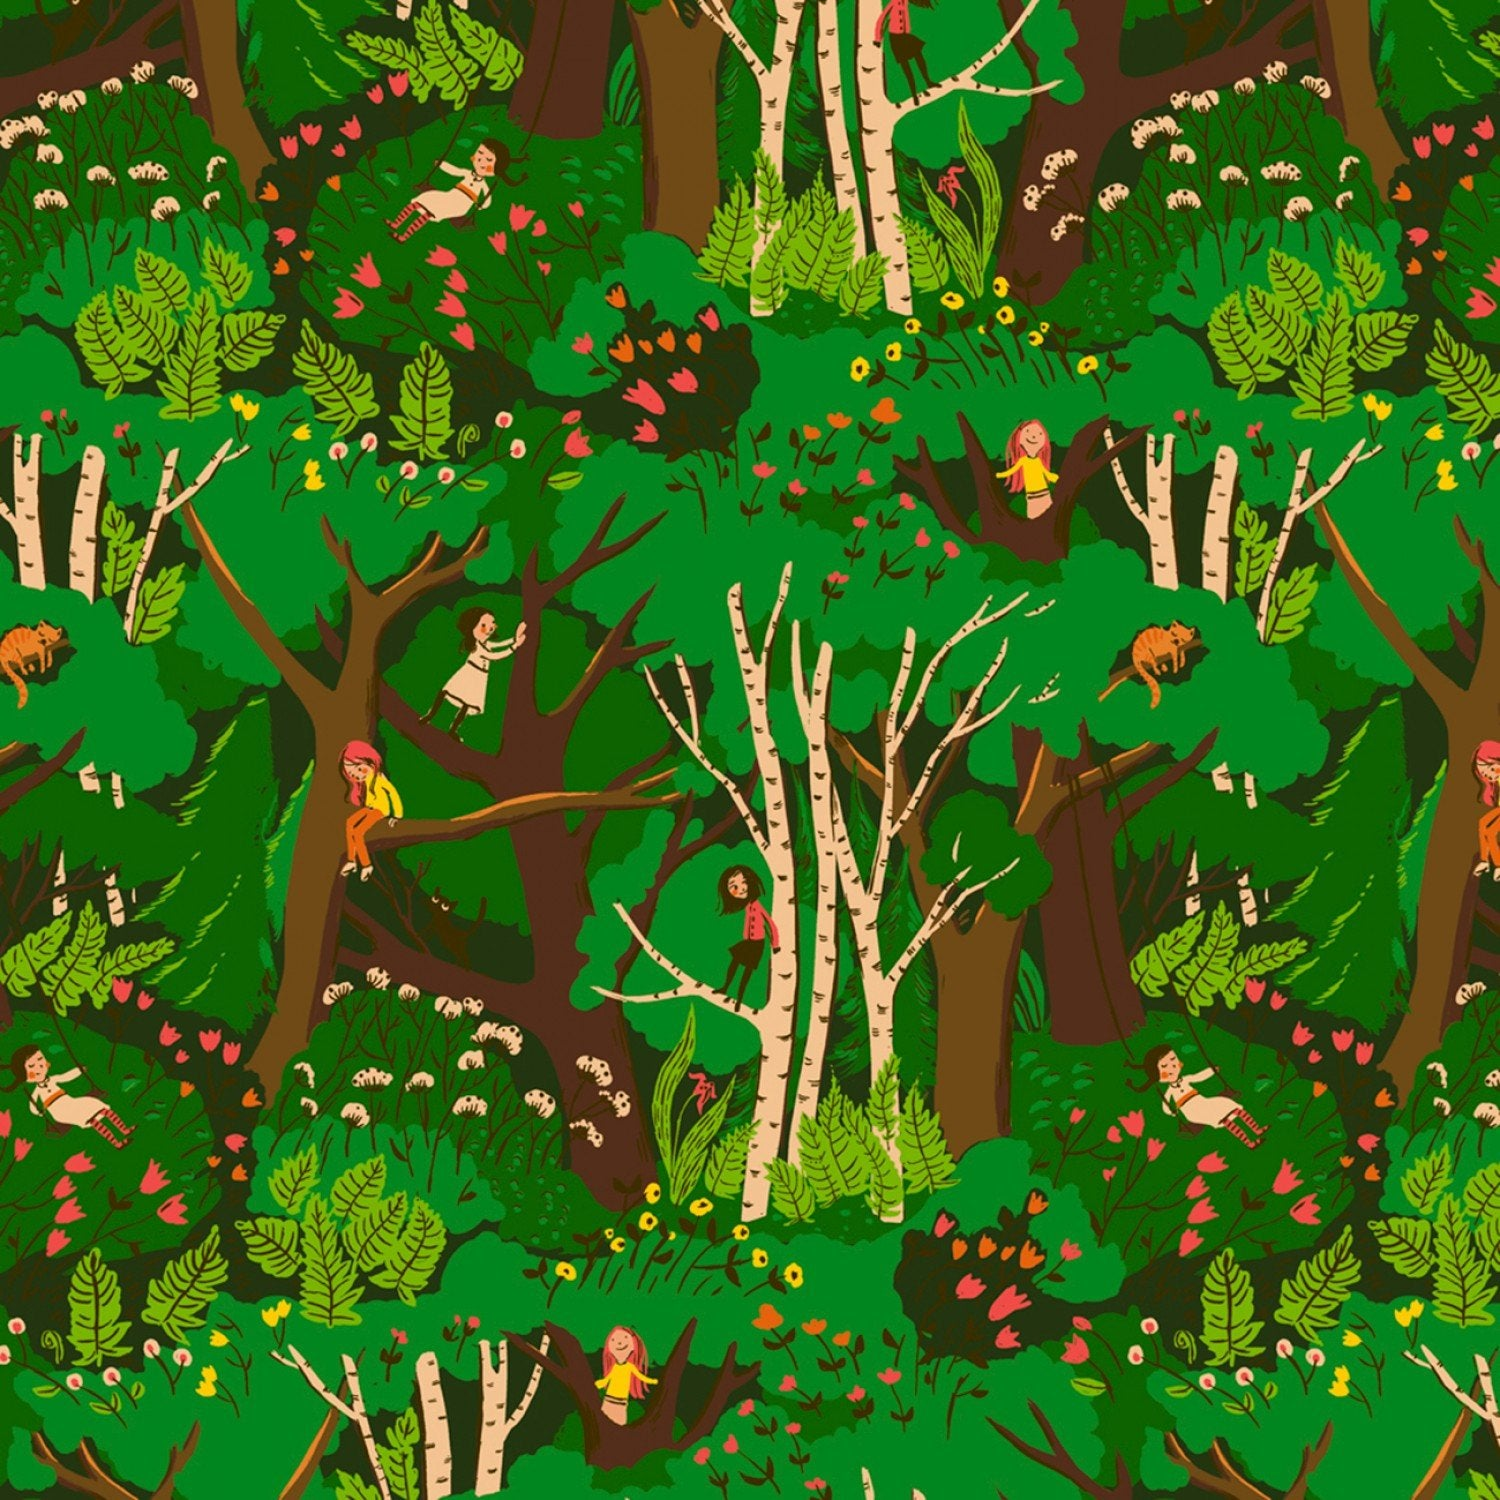 Manufacturer: Windham Fabrics Designer: Heather Ross Collection: 20th Anniversary Collection Print Name: Climbing Trees in Green Material: 100% Cotton  Weight: Quilting  SKU: WIND 40927A-2 Width: 44 inches